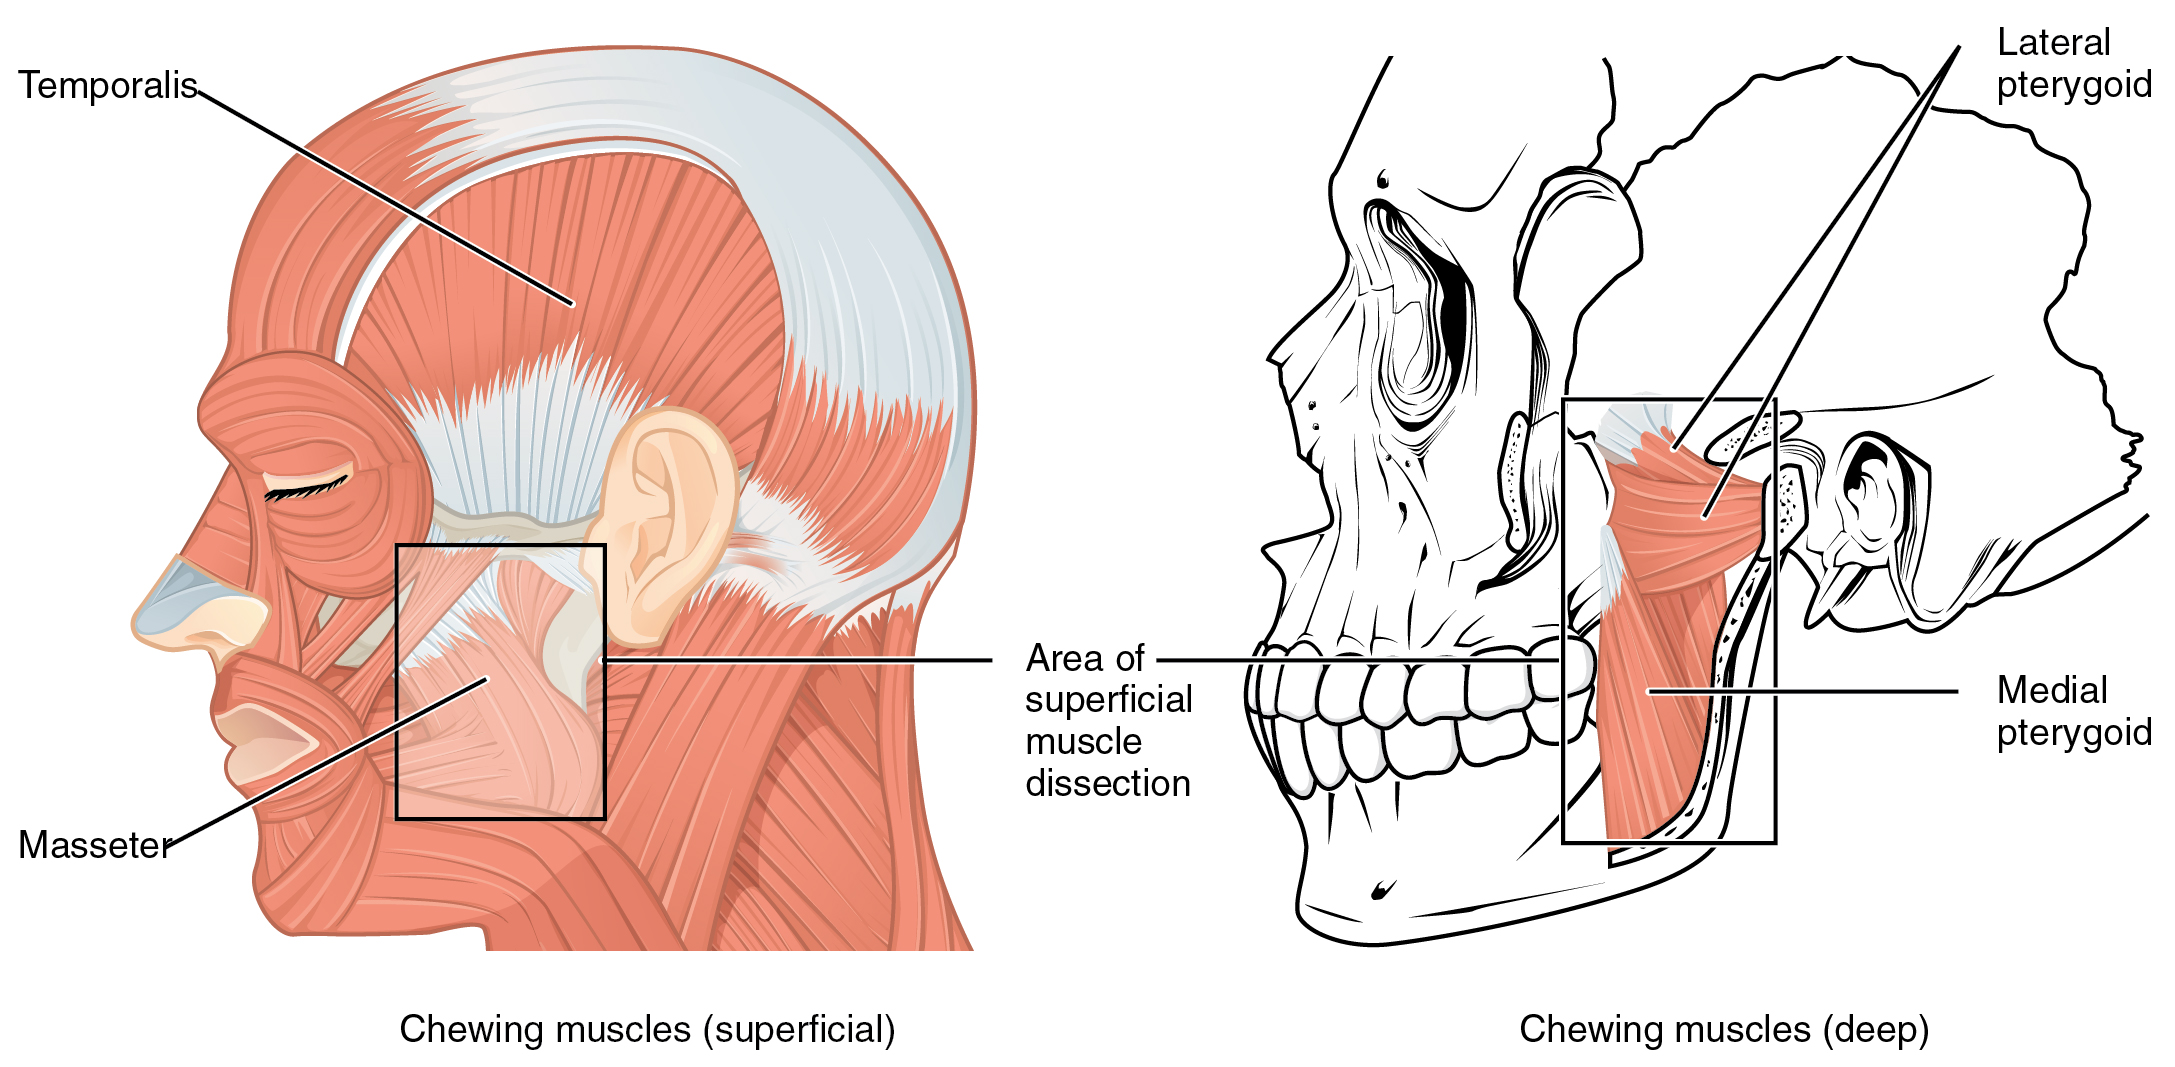 Axial Muscles of the Head, Neck, and Back